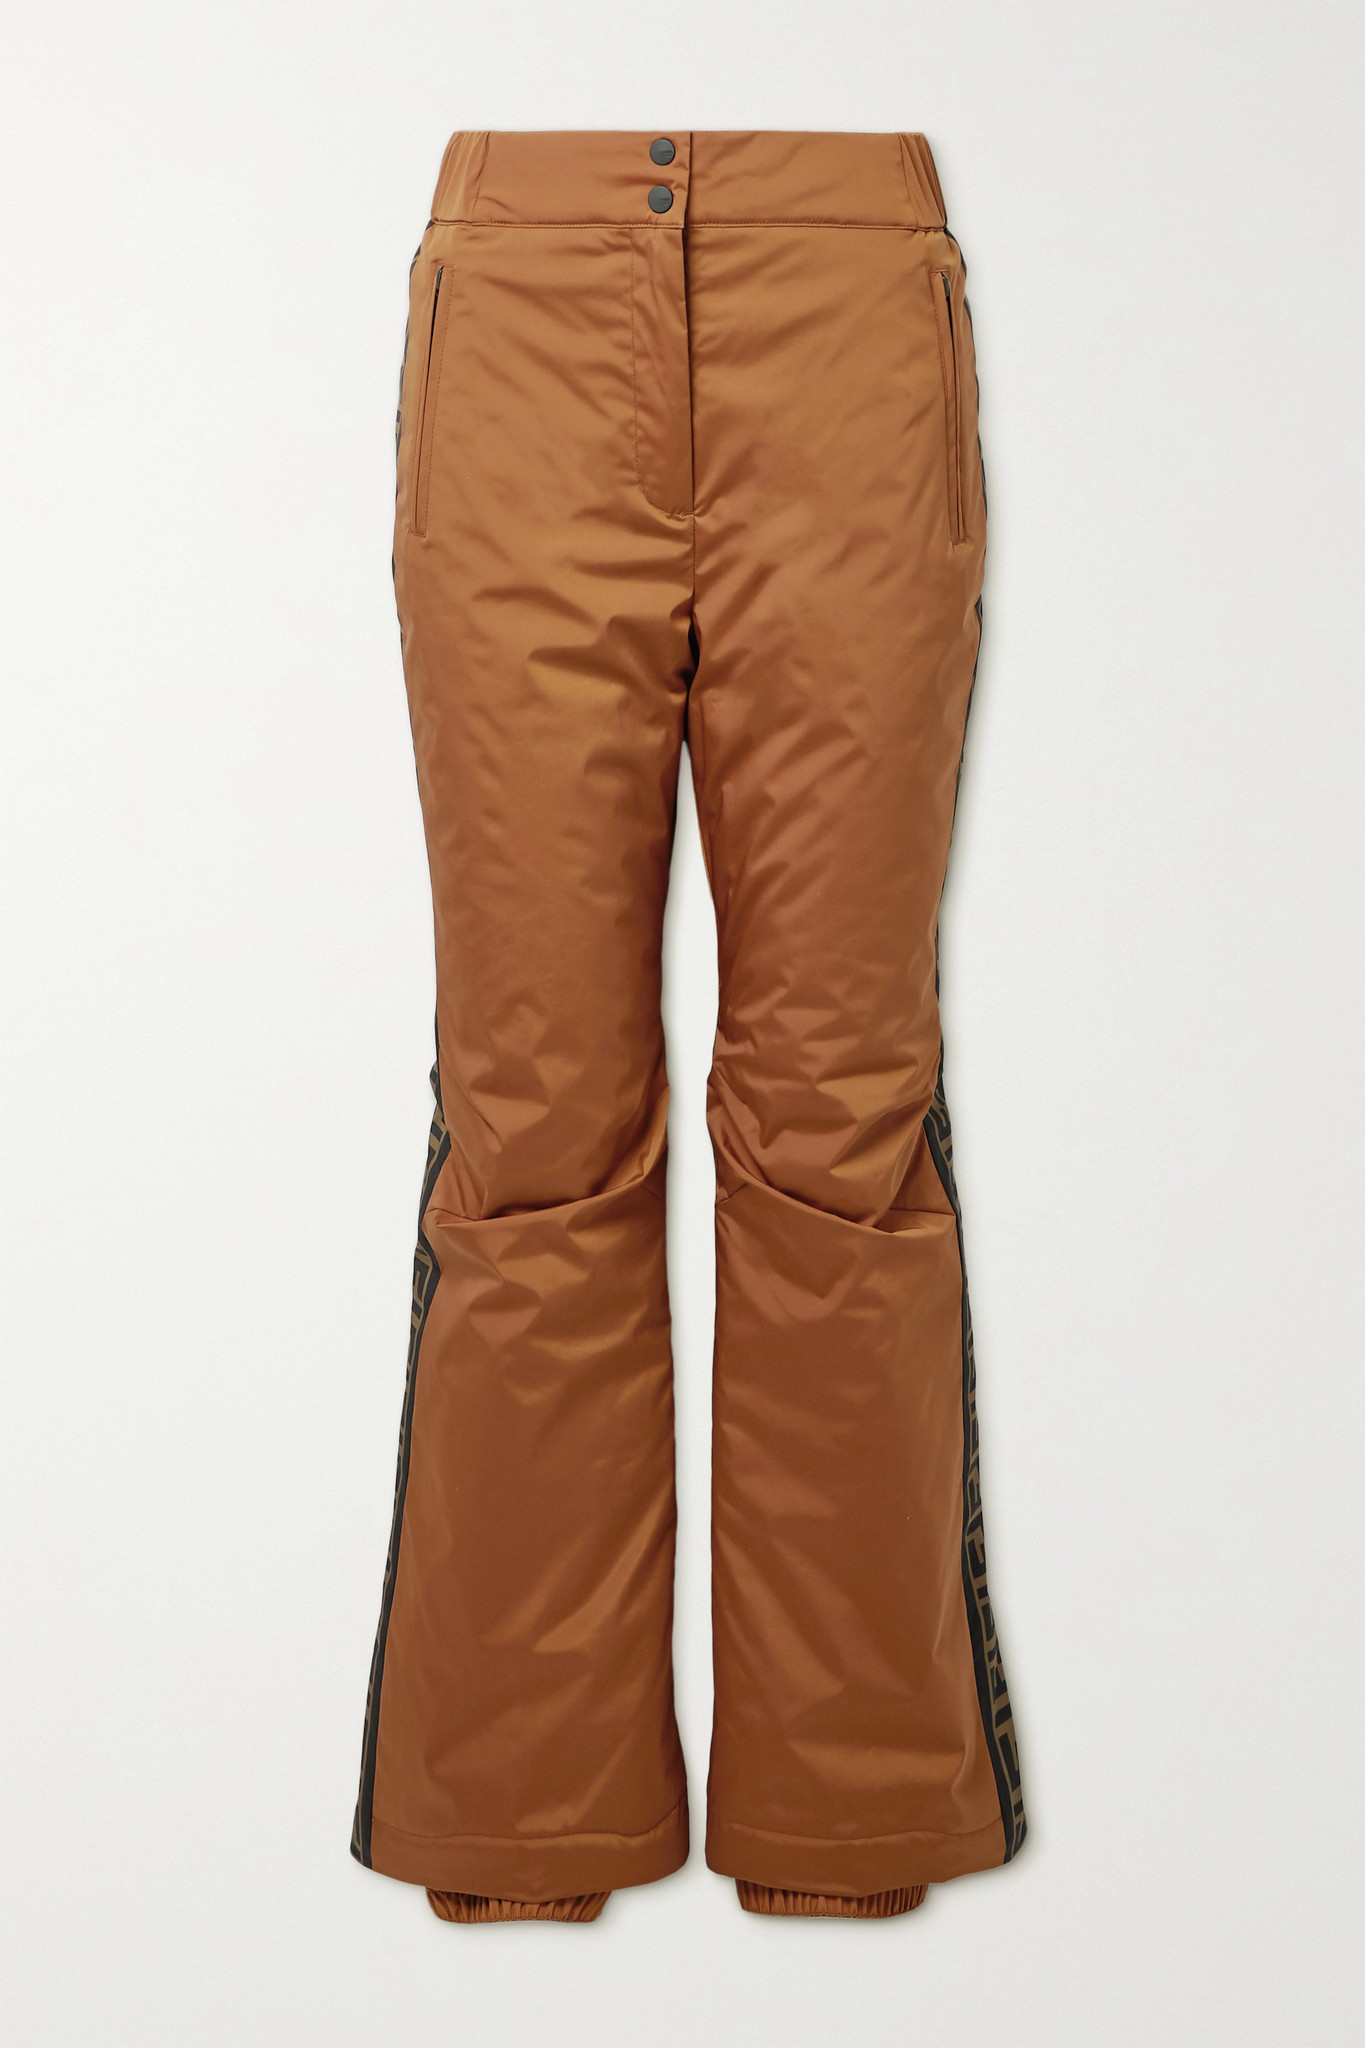 FENDI - Printed Ski Pants - Brown - IT38